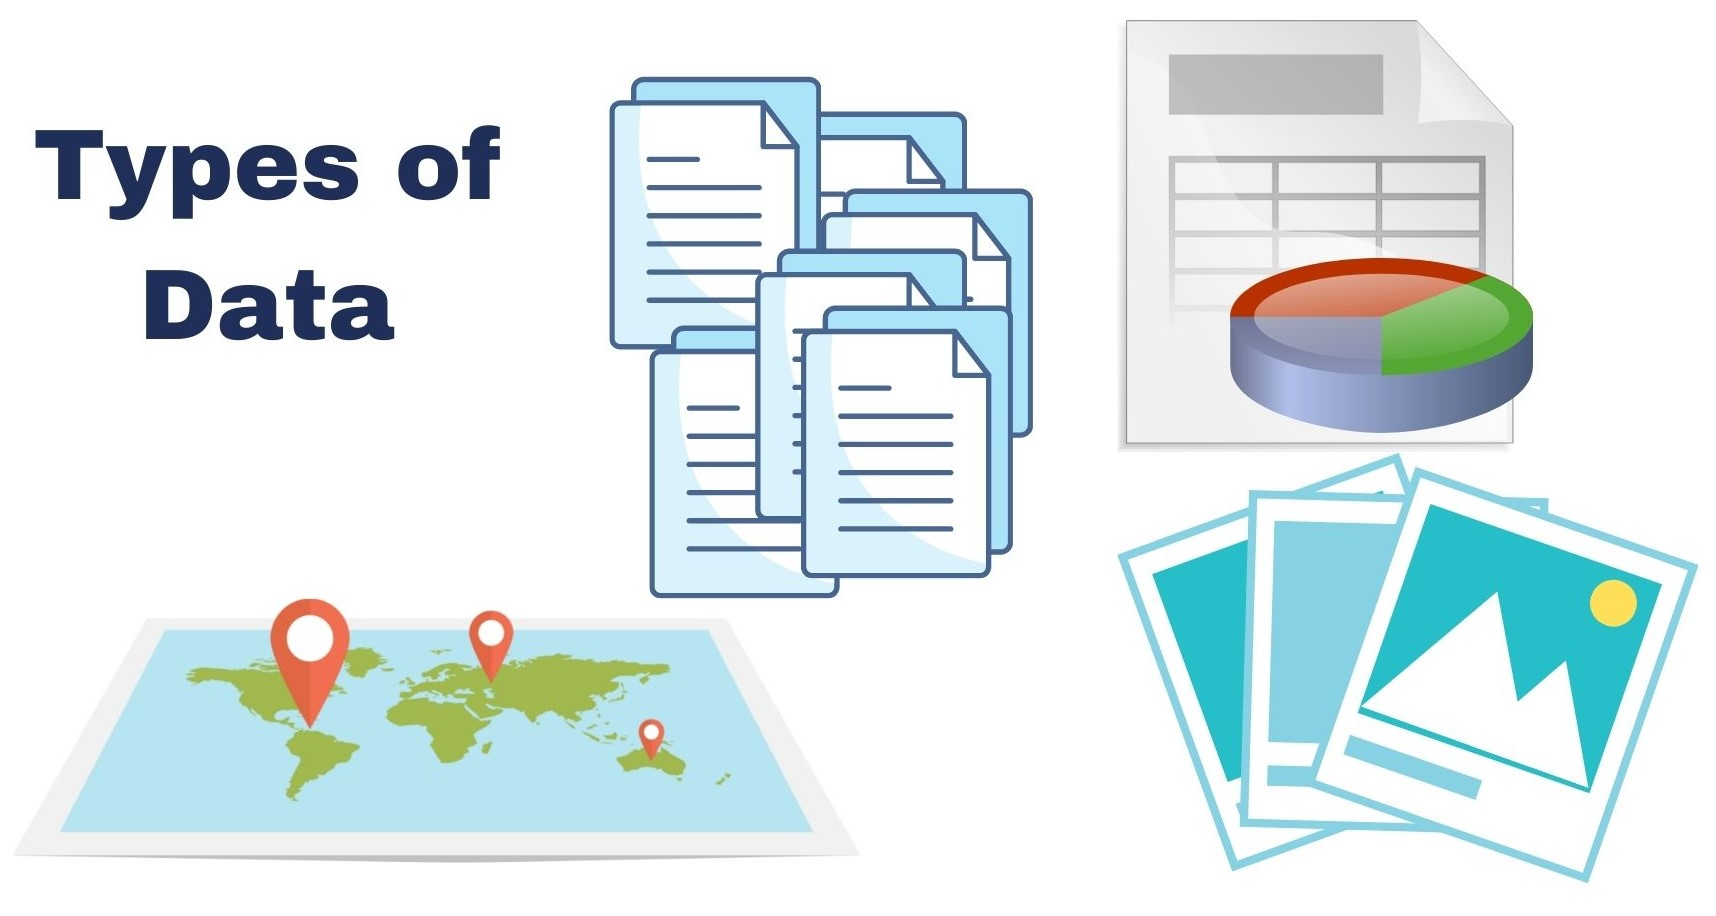 Graphic illustrating commons data types, including spatial, text, image, and spreadsheet data.